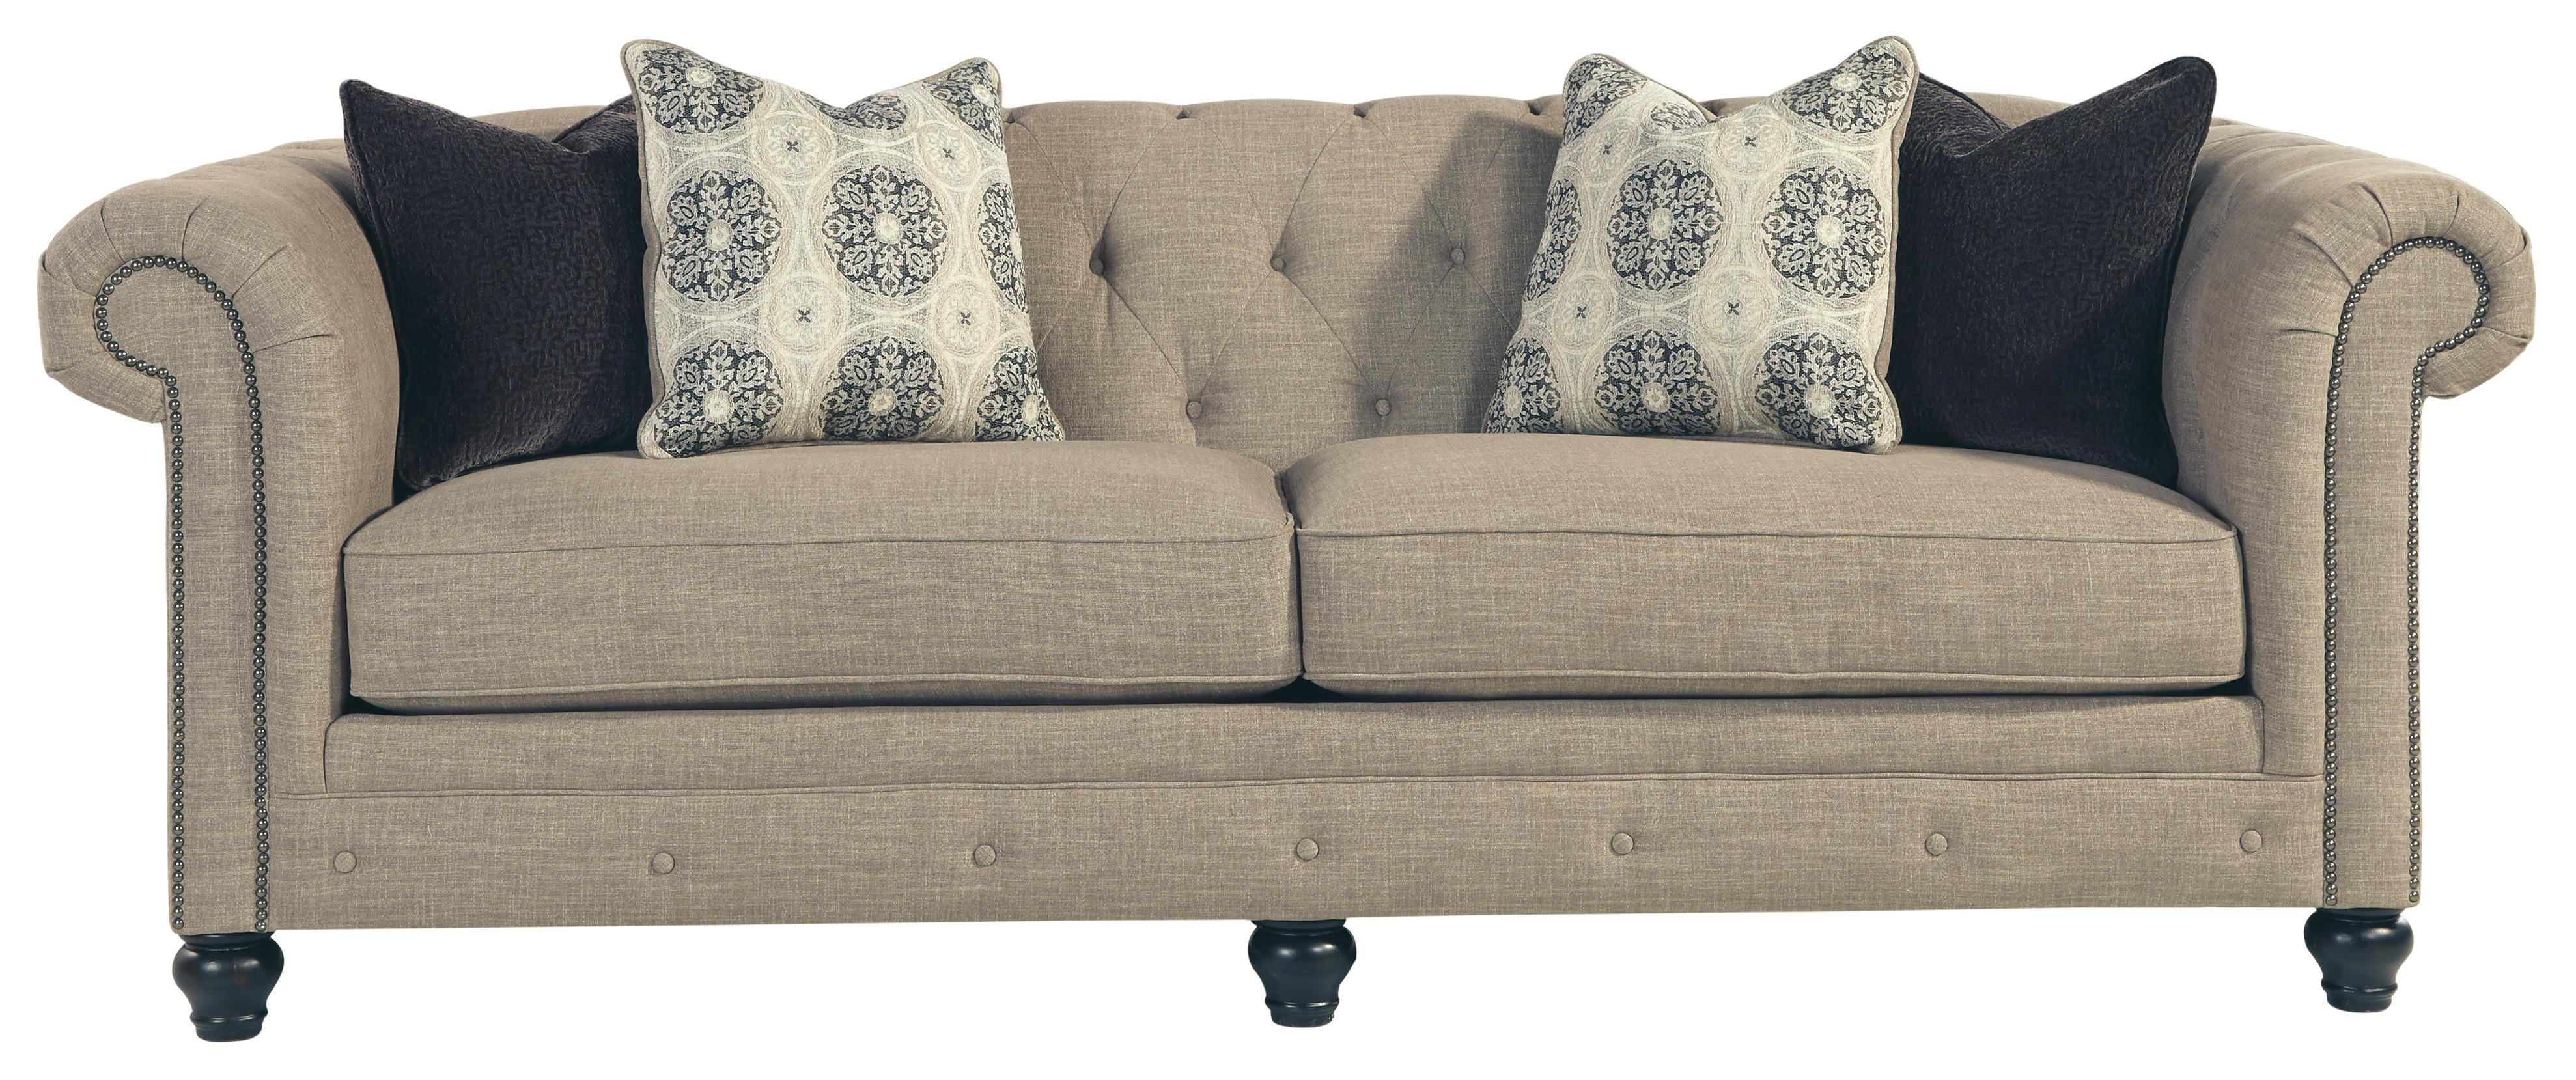 Benchcraft Azlyn Transitional Chesterfield Sofa With Linen Blend Pertaining To Ashley Tufted Sofa (View 9 of 20)